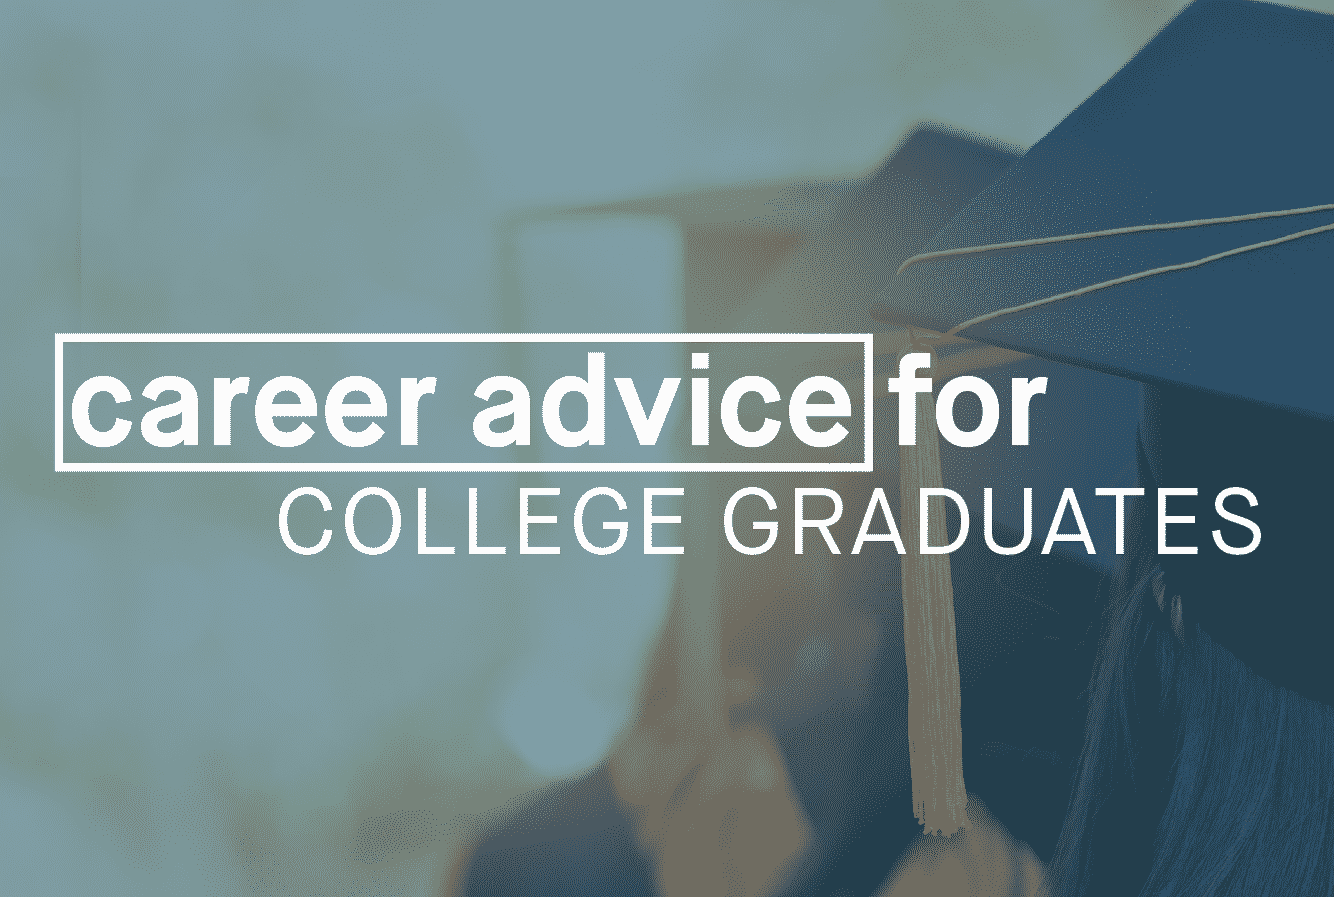 Career Advice for College Graduates